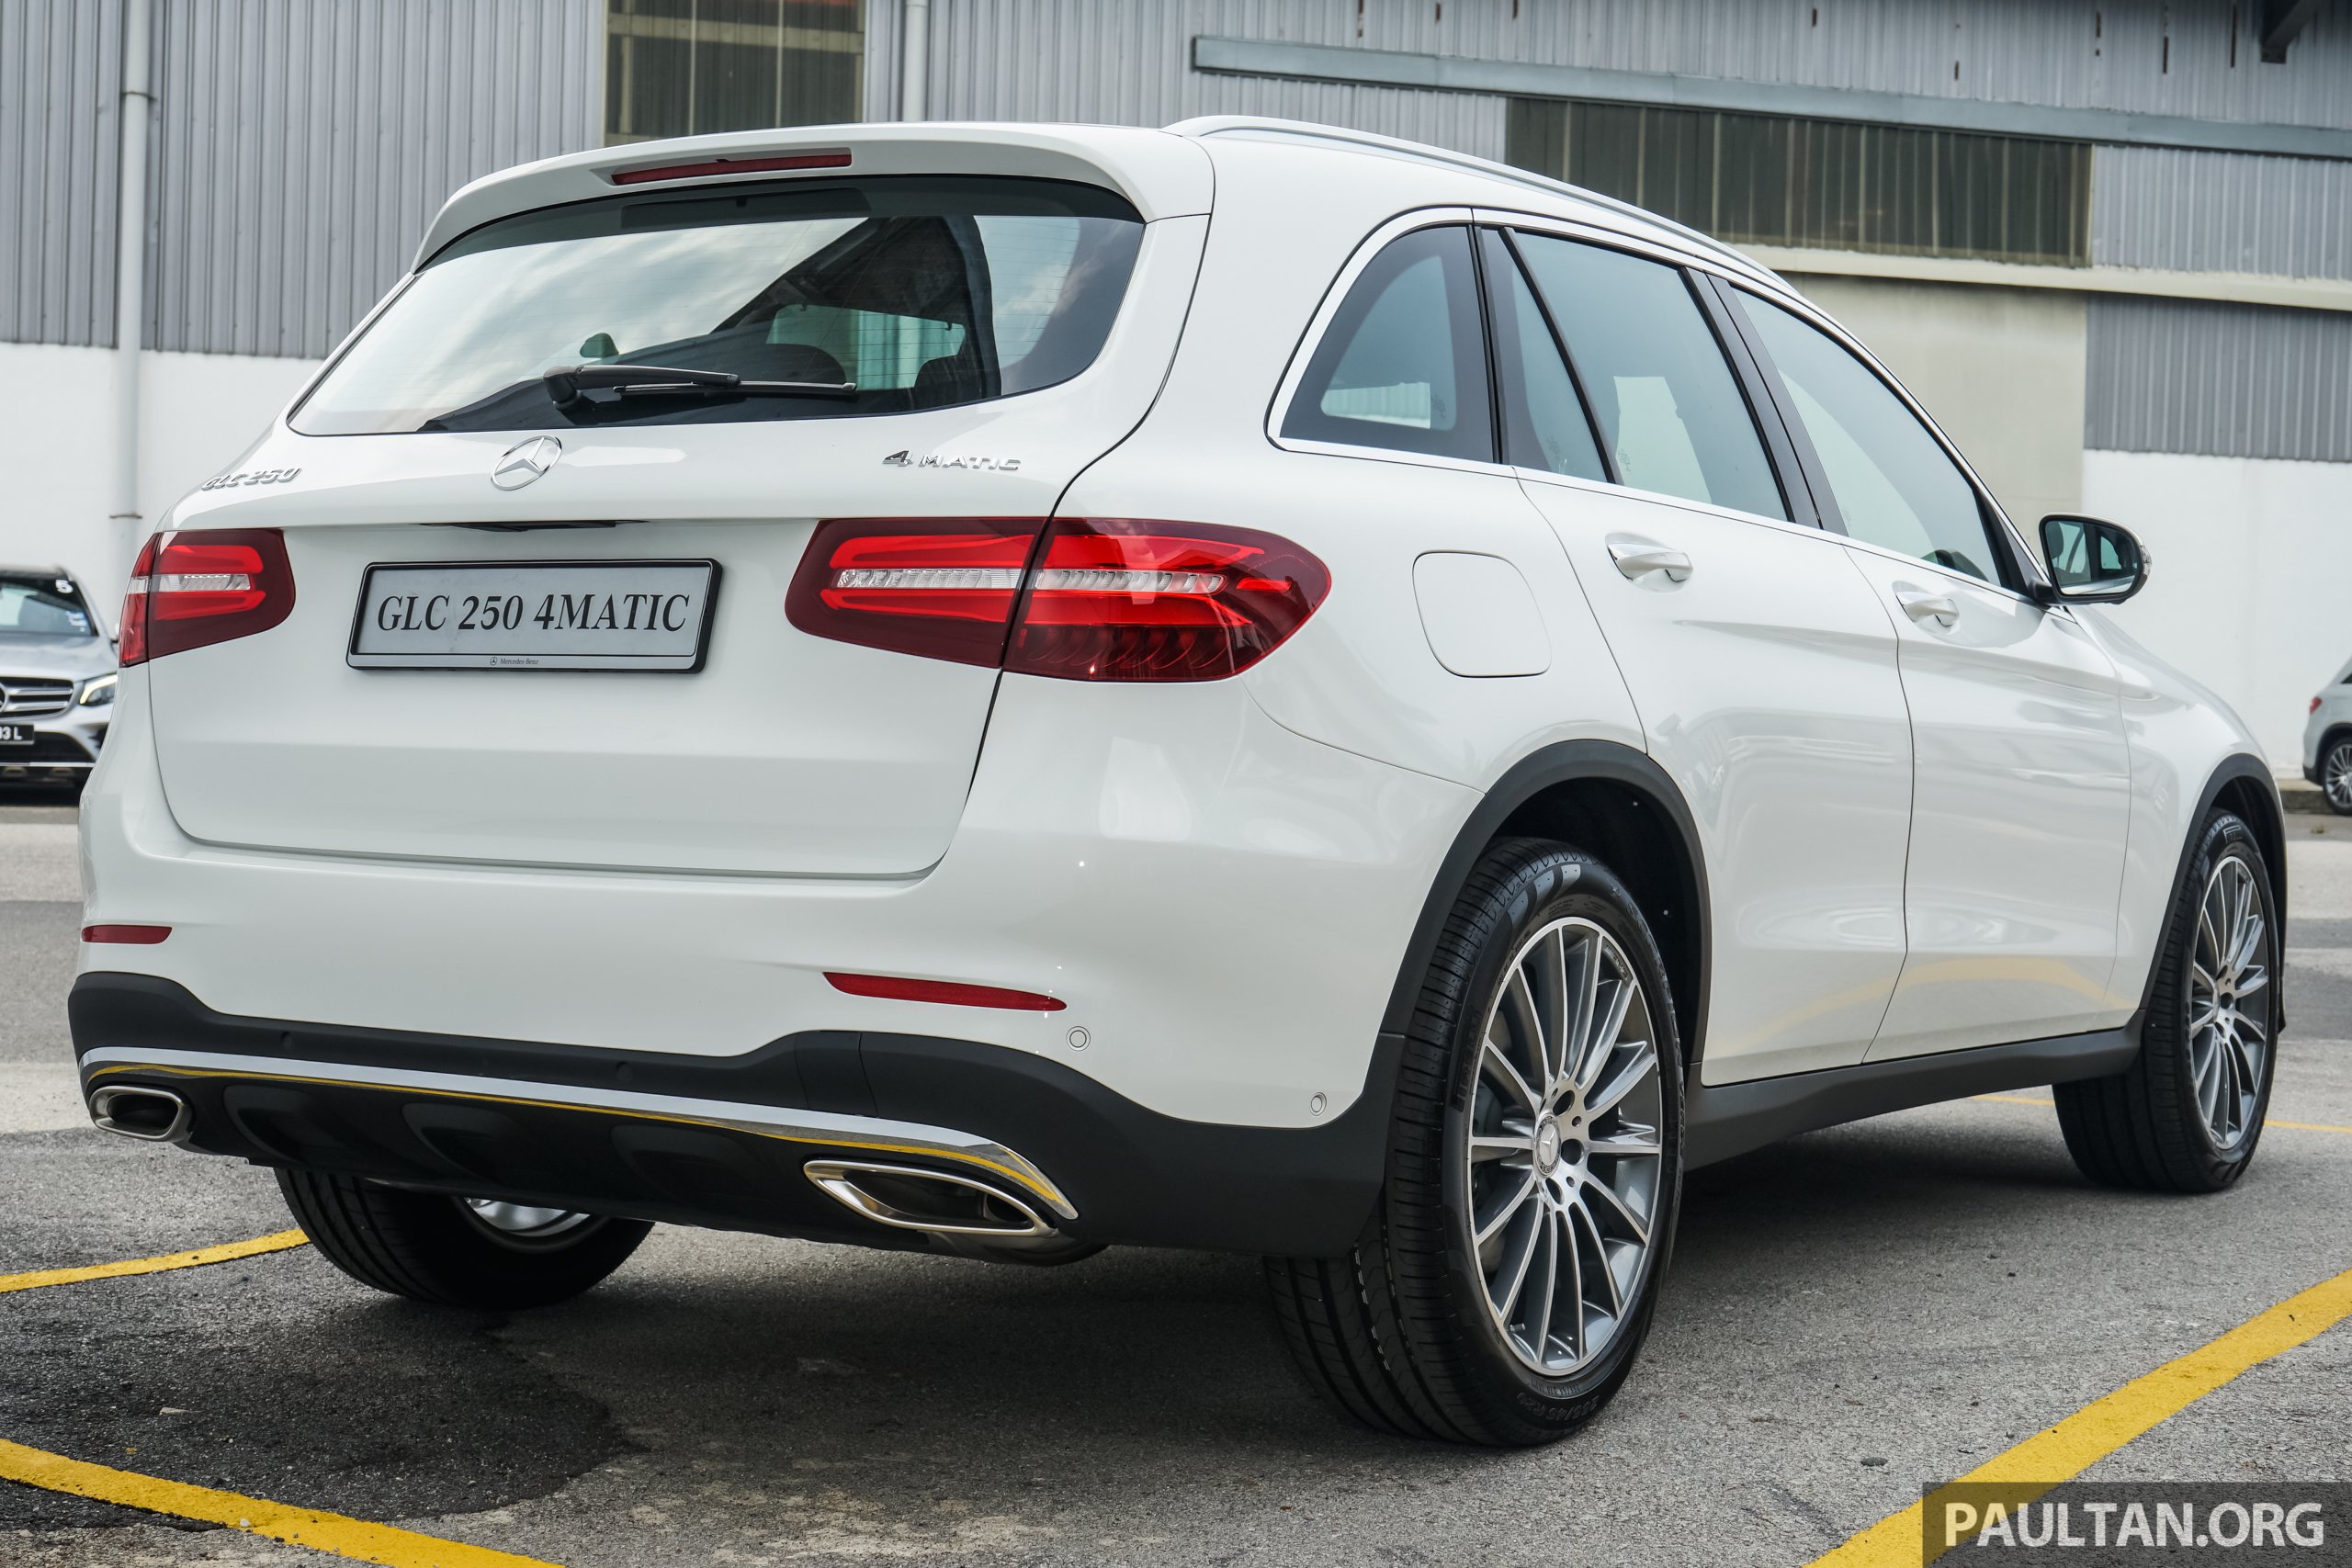 Mercedes Benz Glc 250 Skd Launched Amg Rm326k Image 539023